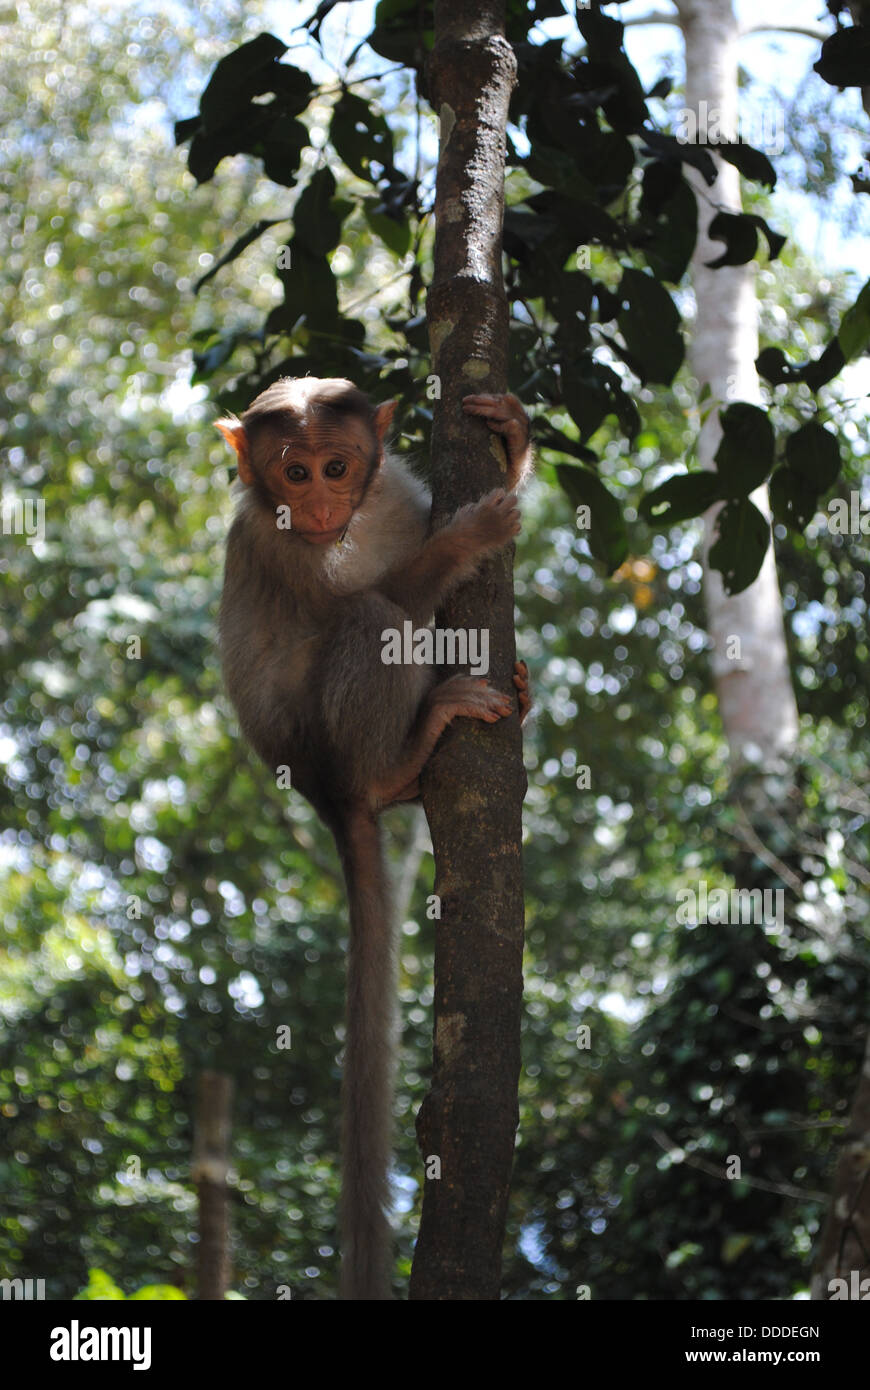 Monkey in Periyar National Park, Kerala, India - Stock Image